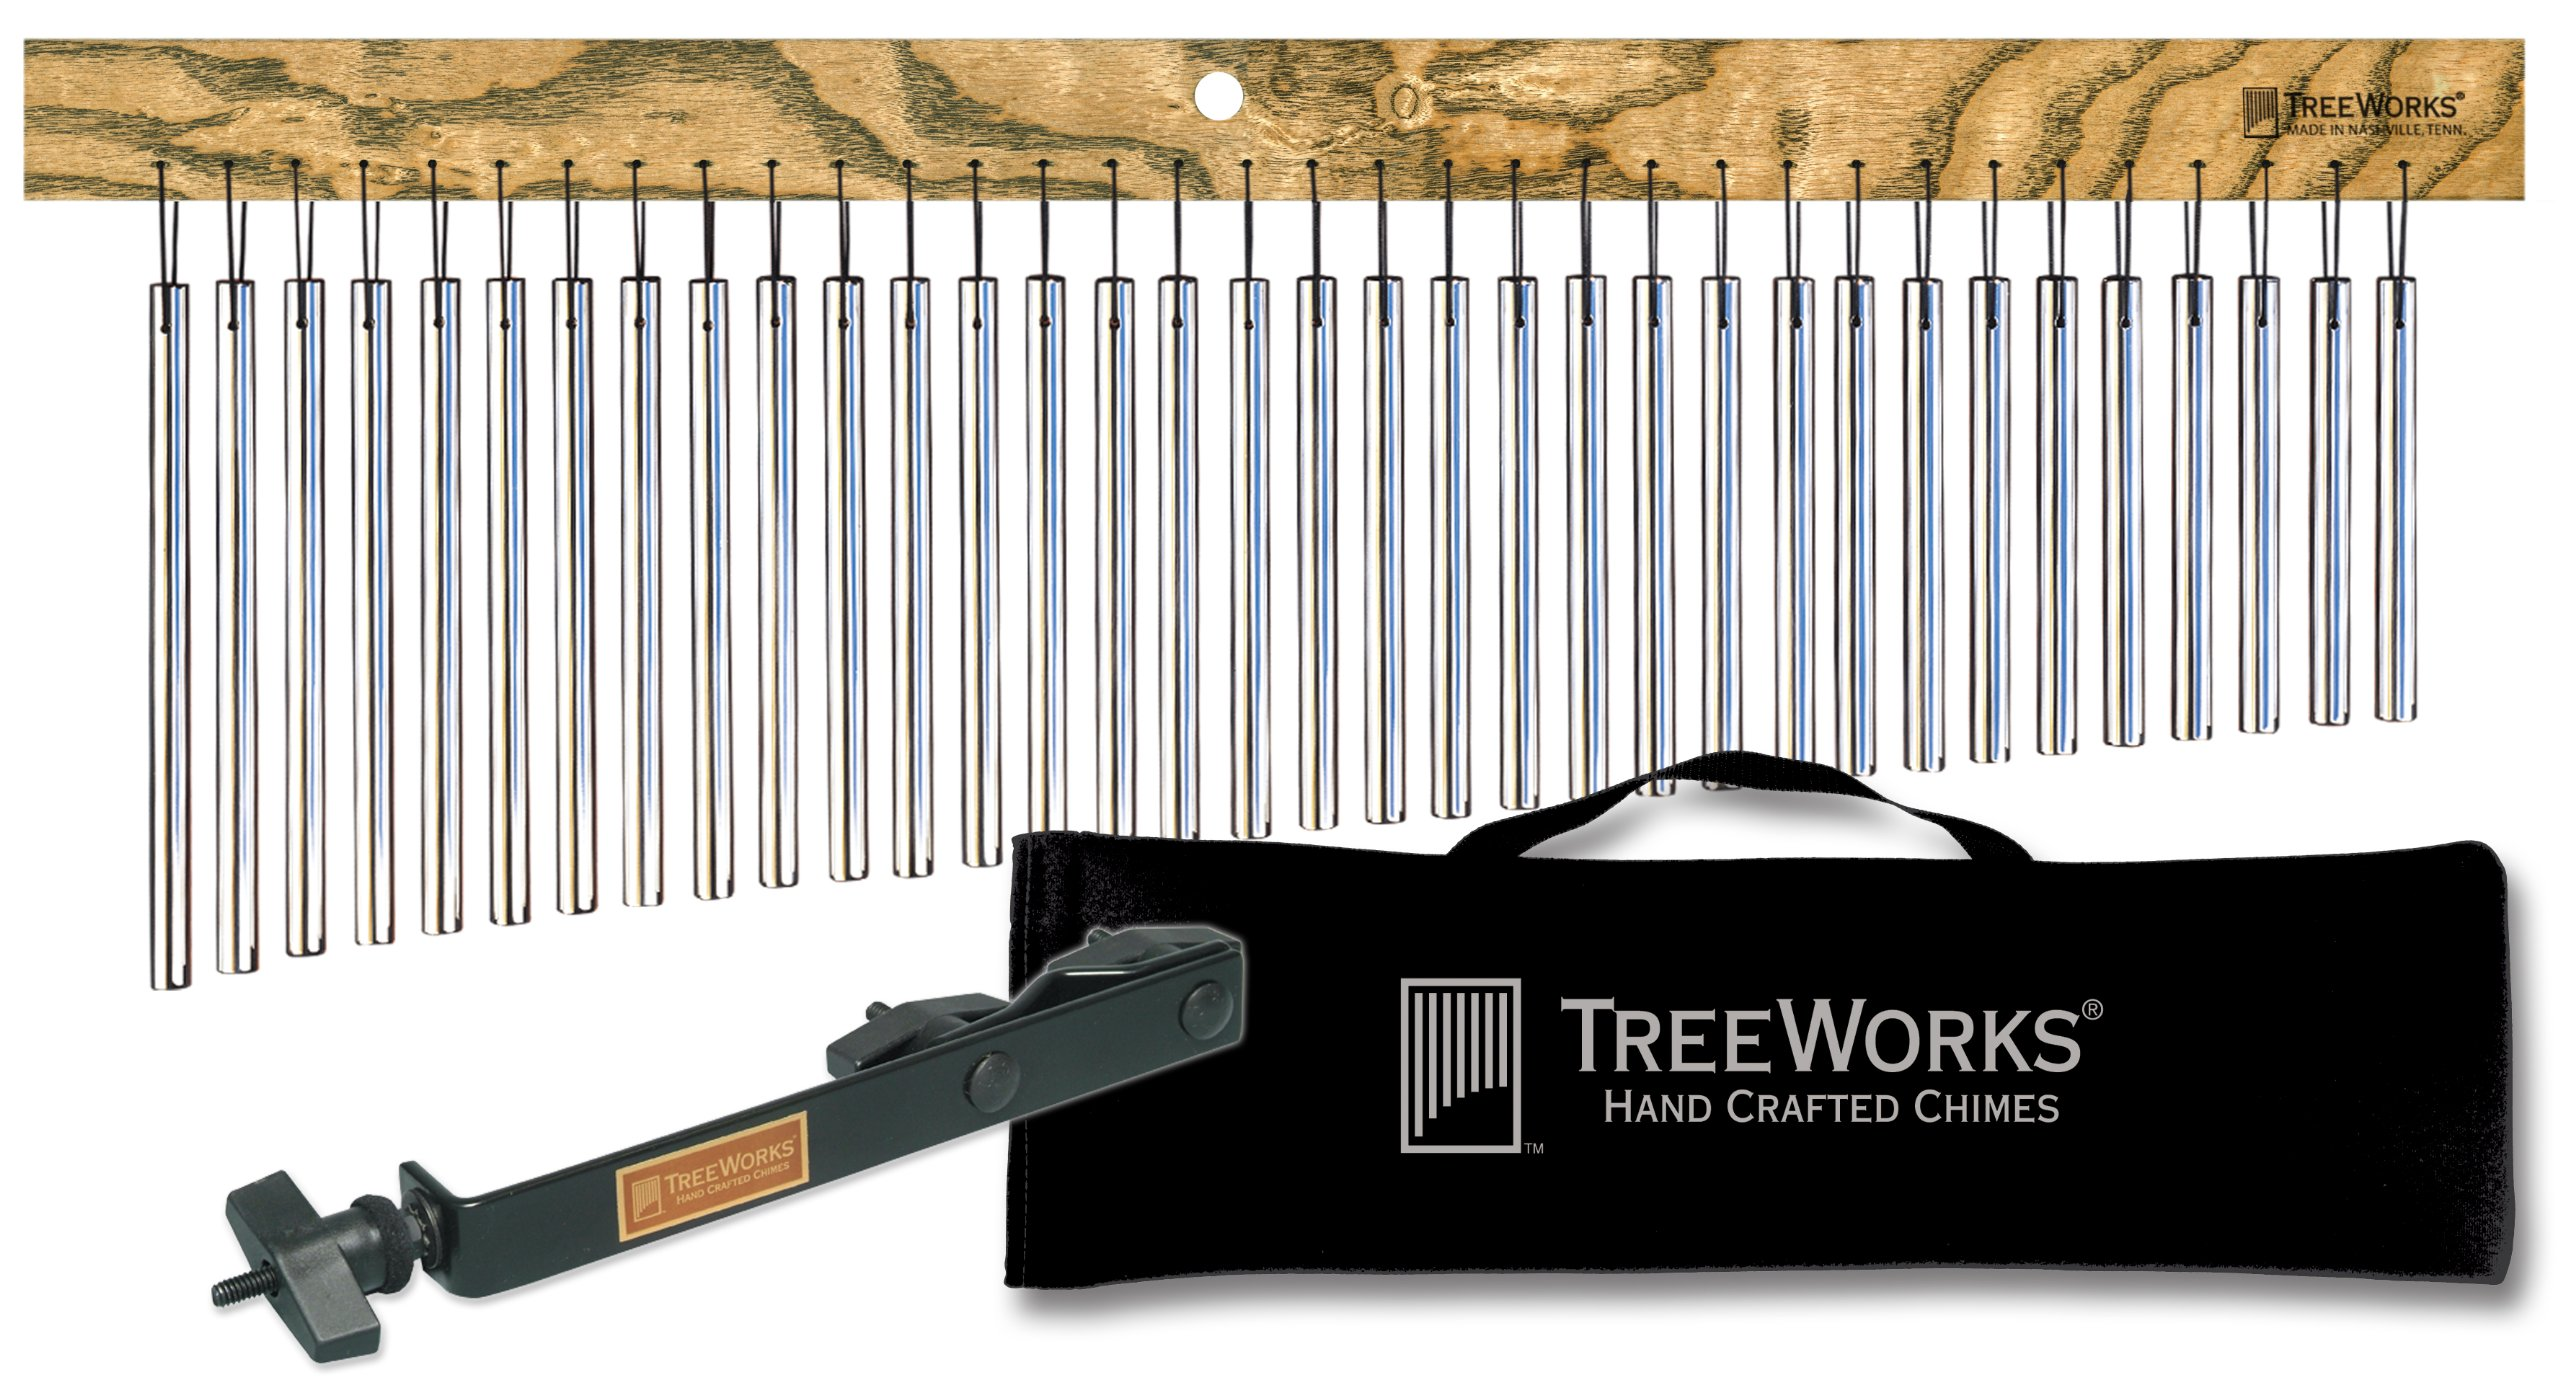 TreeWorks Chimes TRE35kit Made in USA Complete Large Single Row Chime Set with Mount and Travel Bag by TreeWorks Chimes